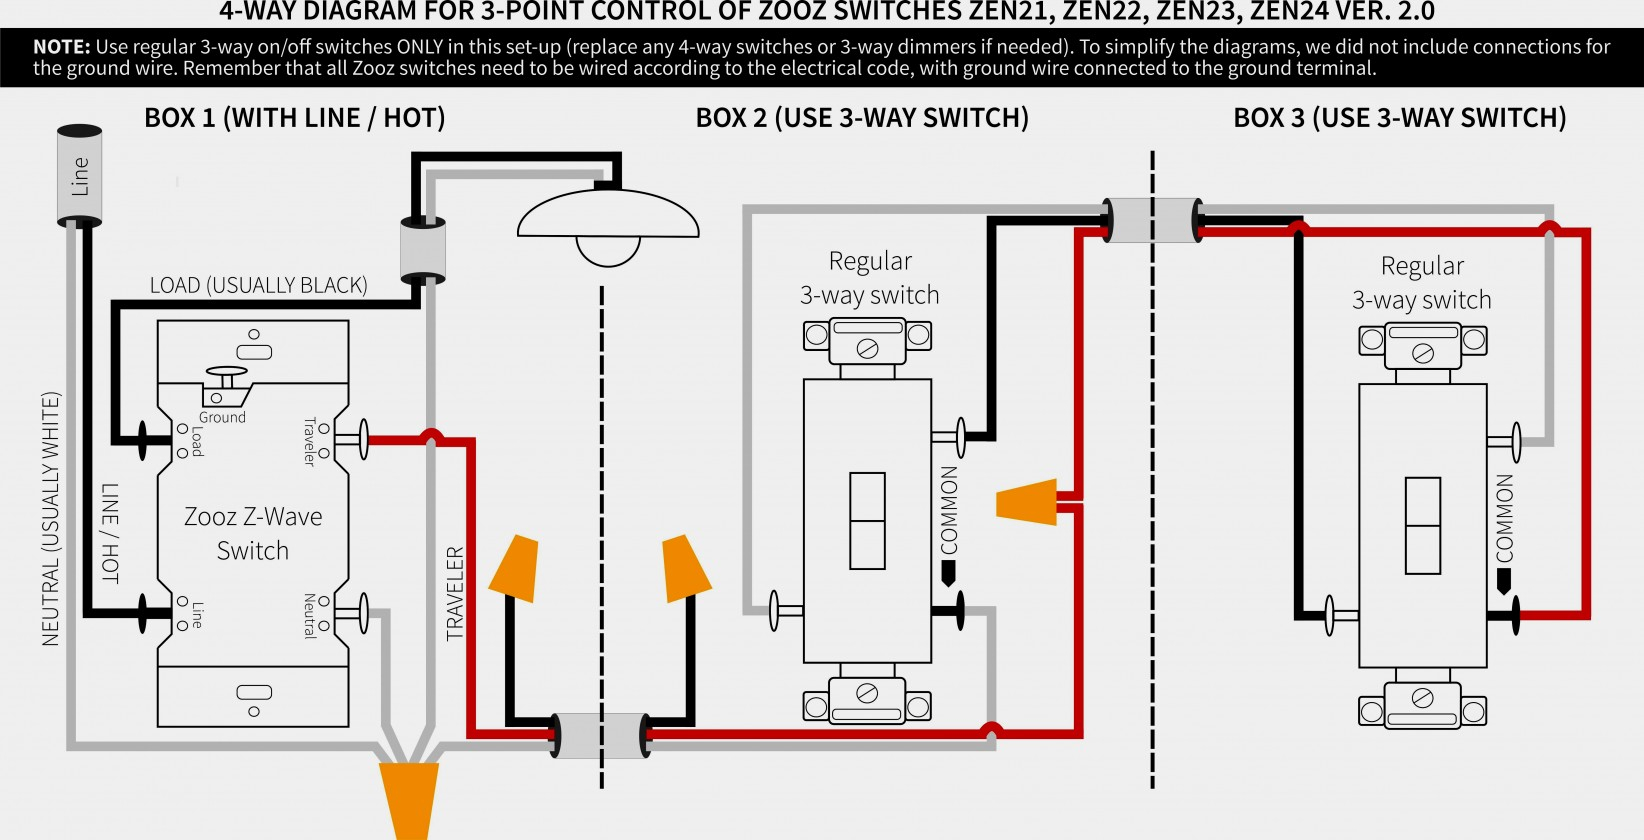 277 Volt Dimmer Switch Wiring Diagram | Wiring Diagram - 12 Volt 3 Way Switch Wiring Diagram